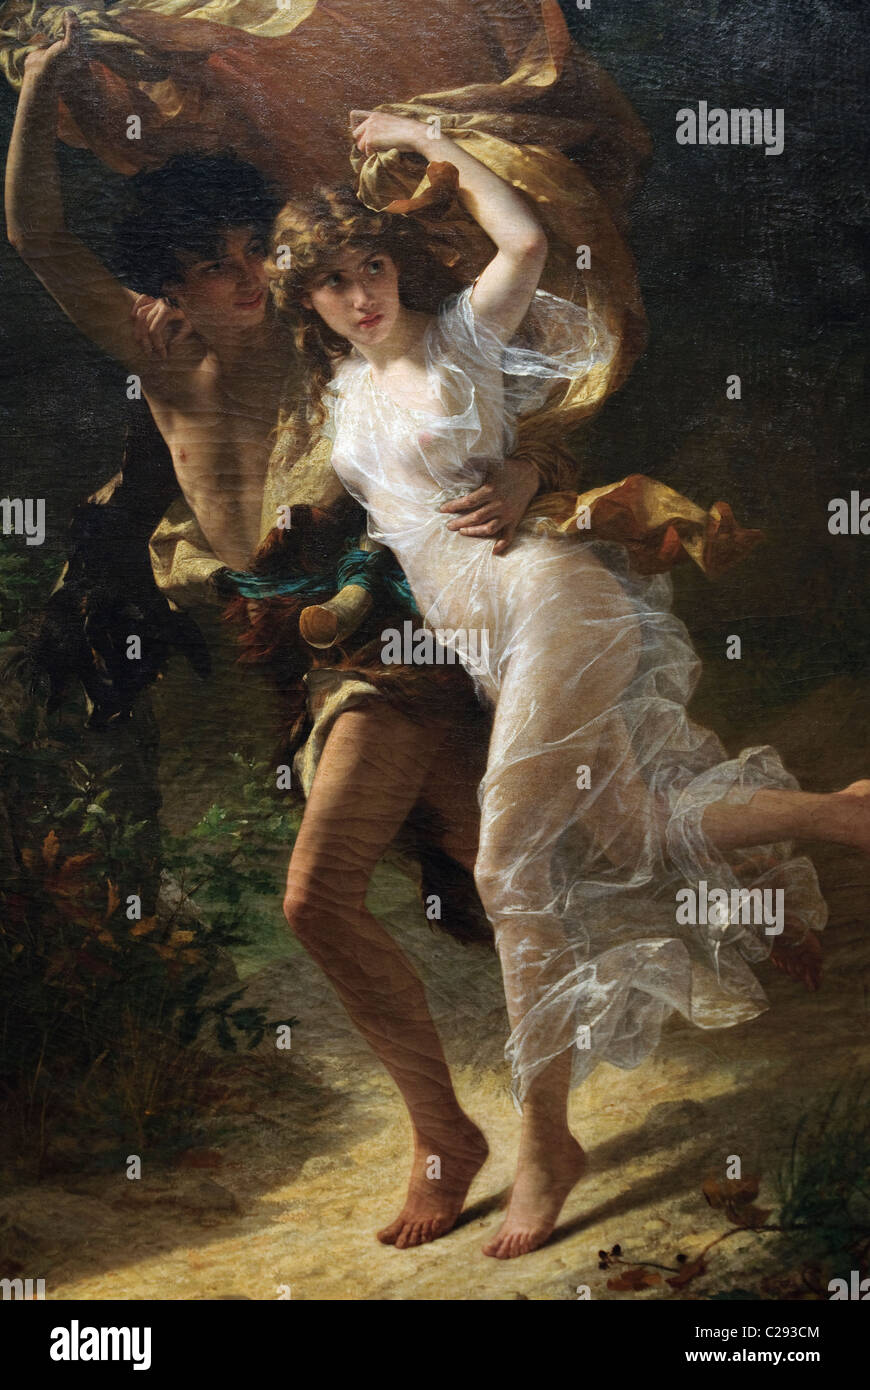 Detail: The Storm,1880, by Pierre-Auguste Cot - Stock Image